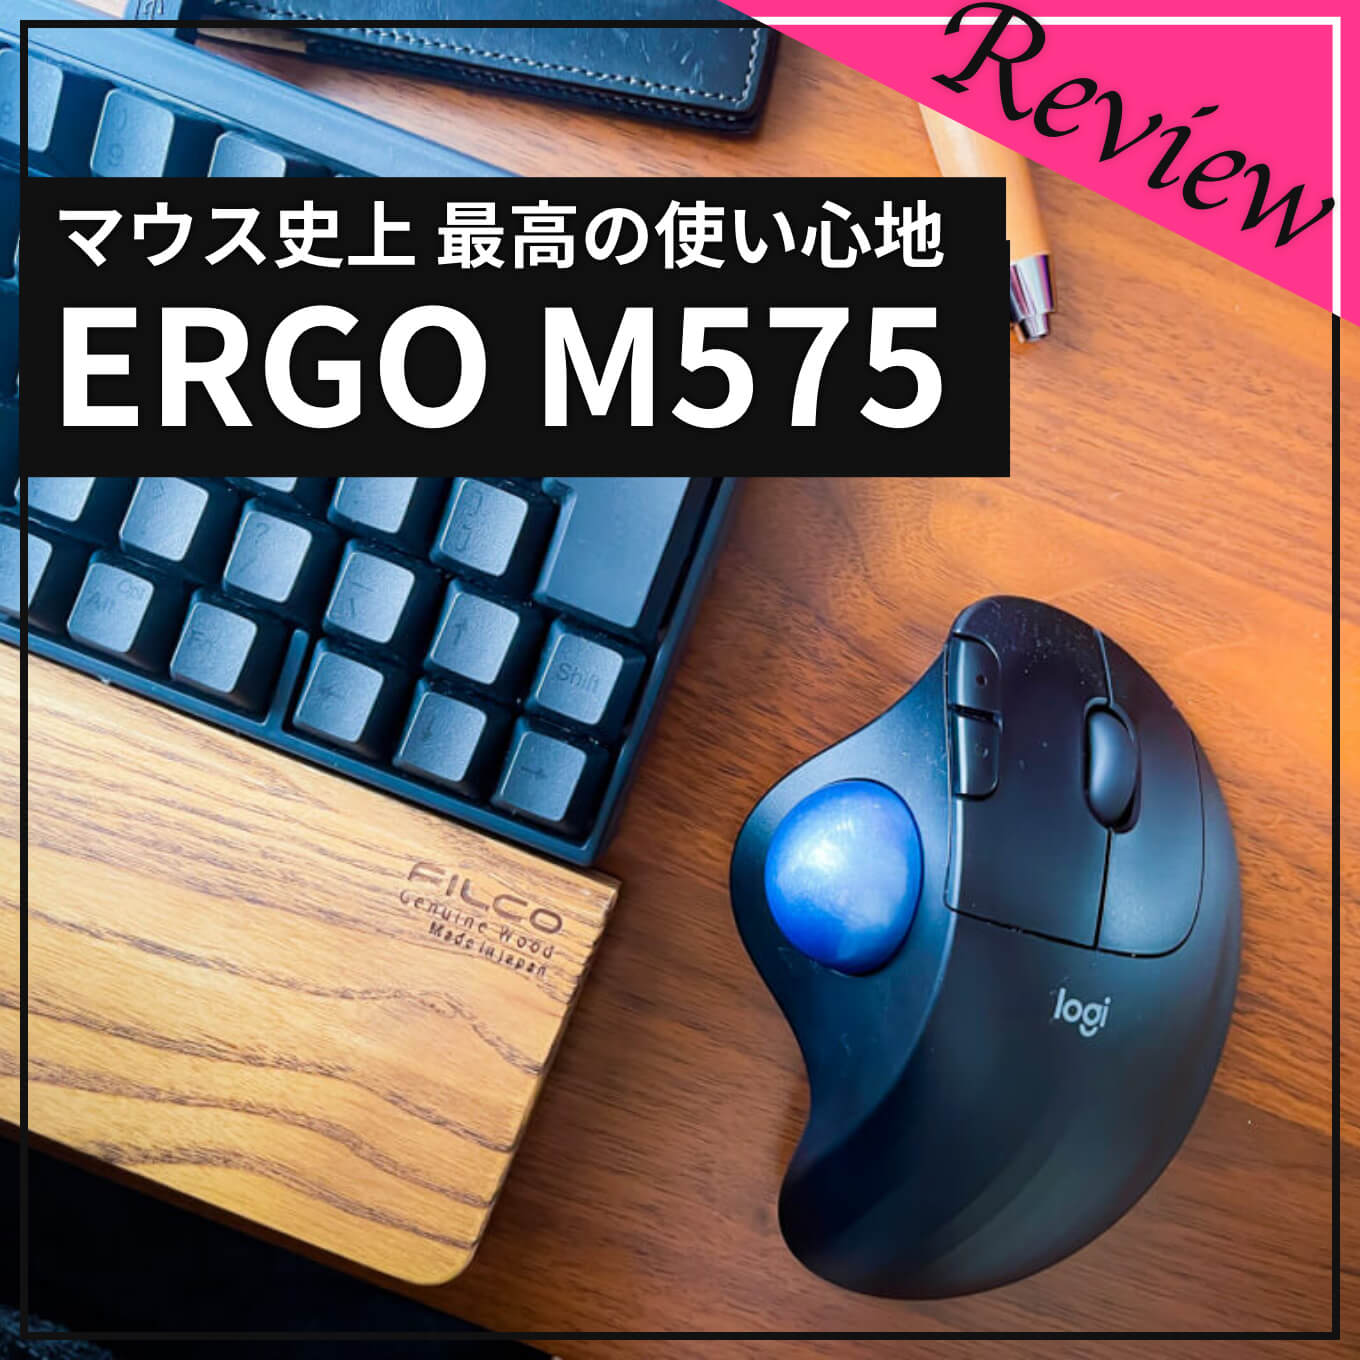 review-ergo-m575